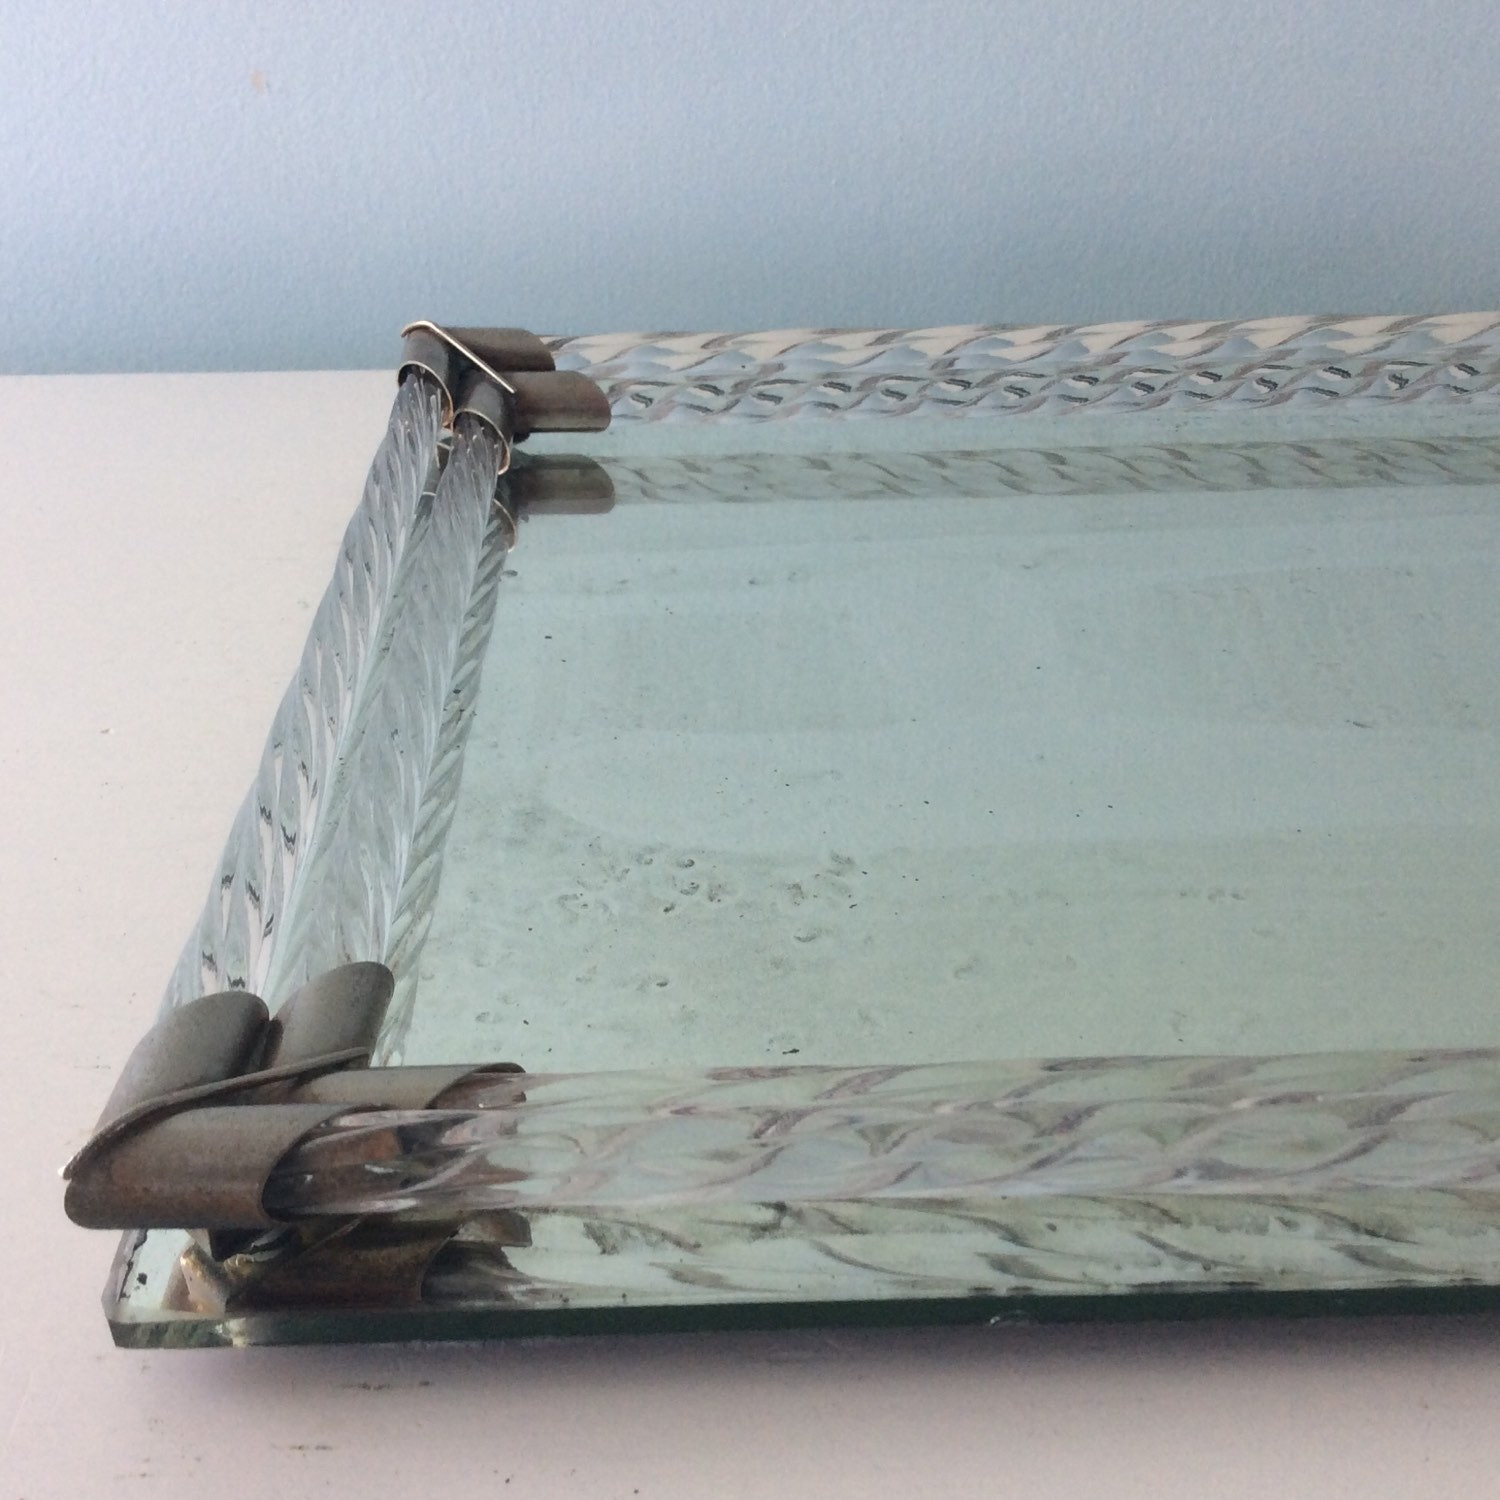 Antique vanity tray with lace insert - Vanity Vintage Tray Murano Glass